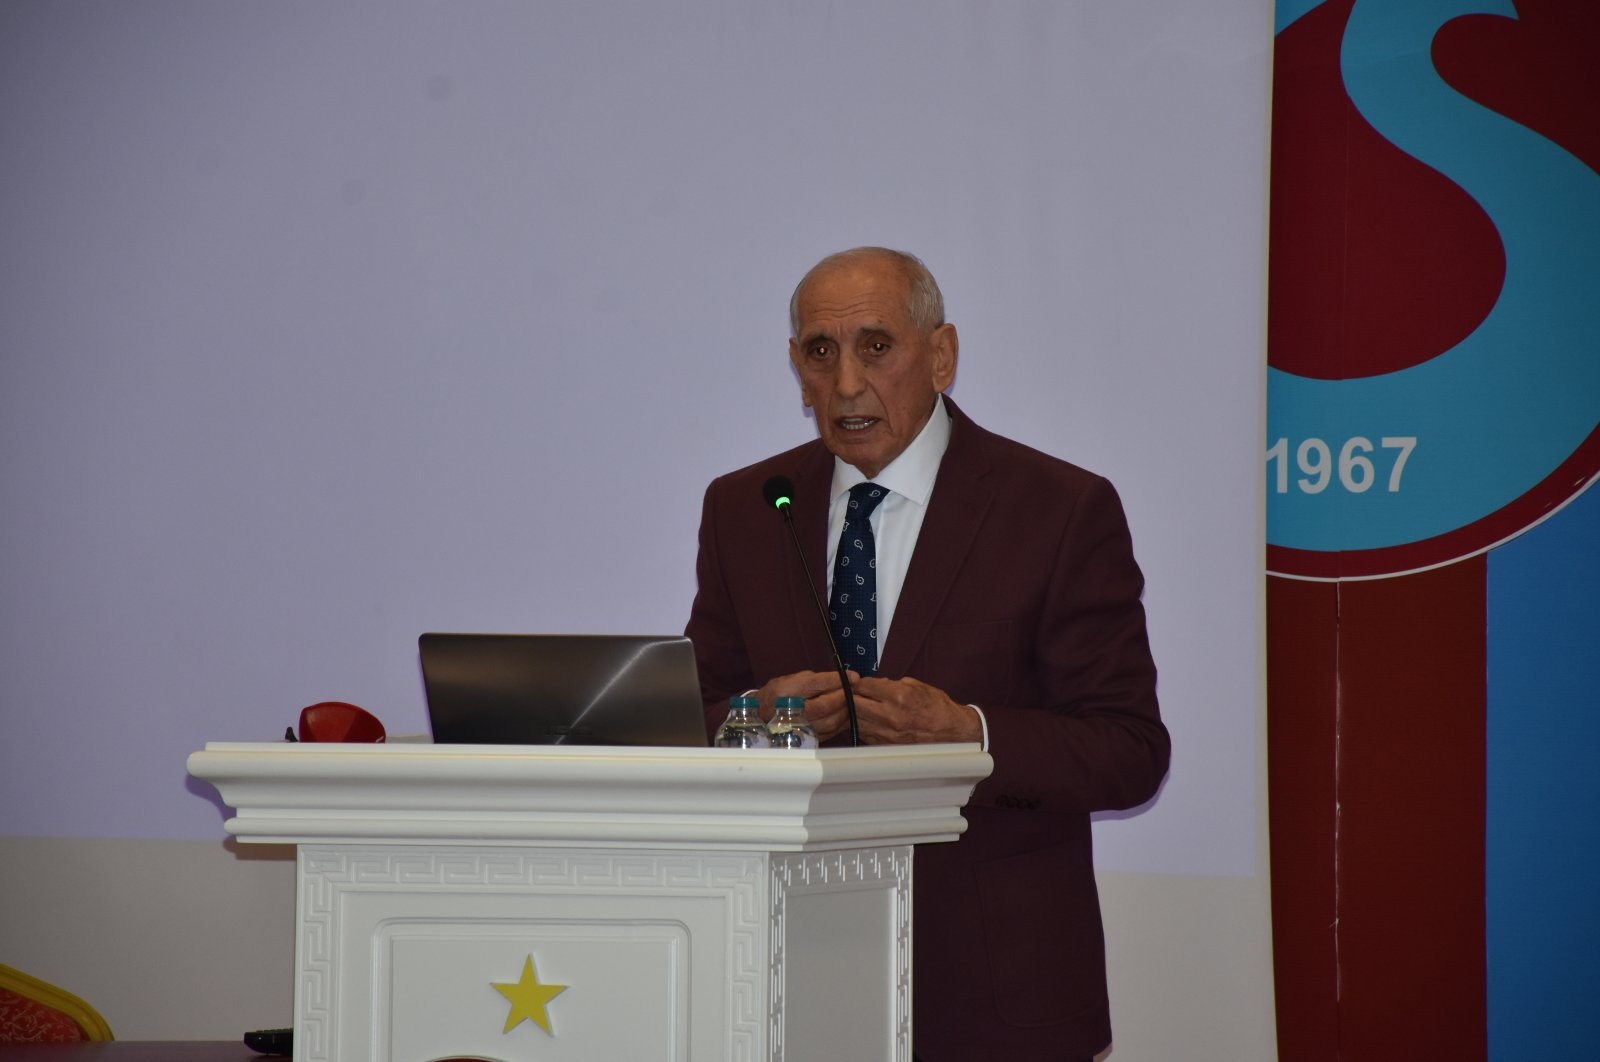 Özkan Sümer speaks at an event in Trabzon, northern Turkey, Jan. 27, 2020. (AA PHOTO)